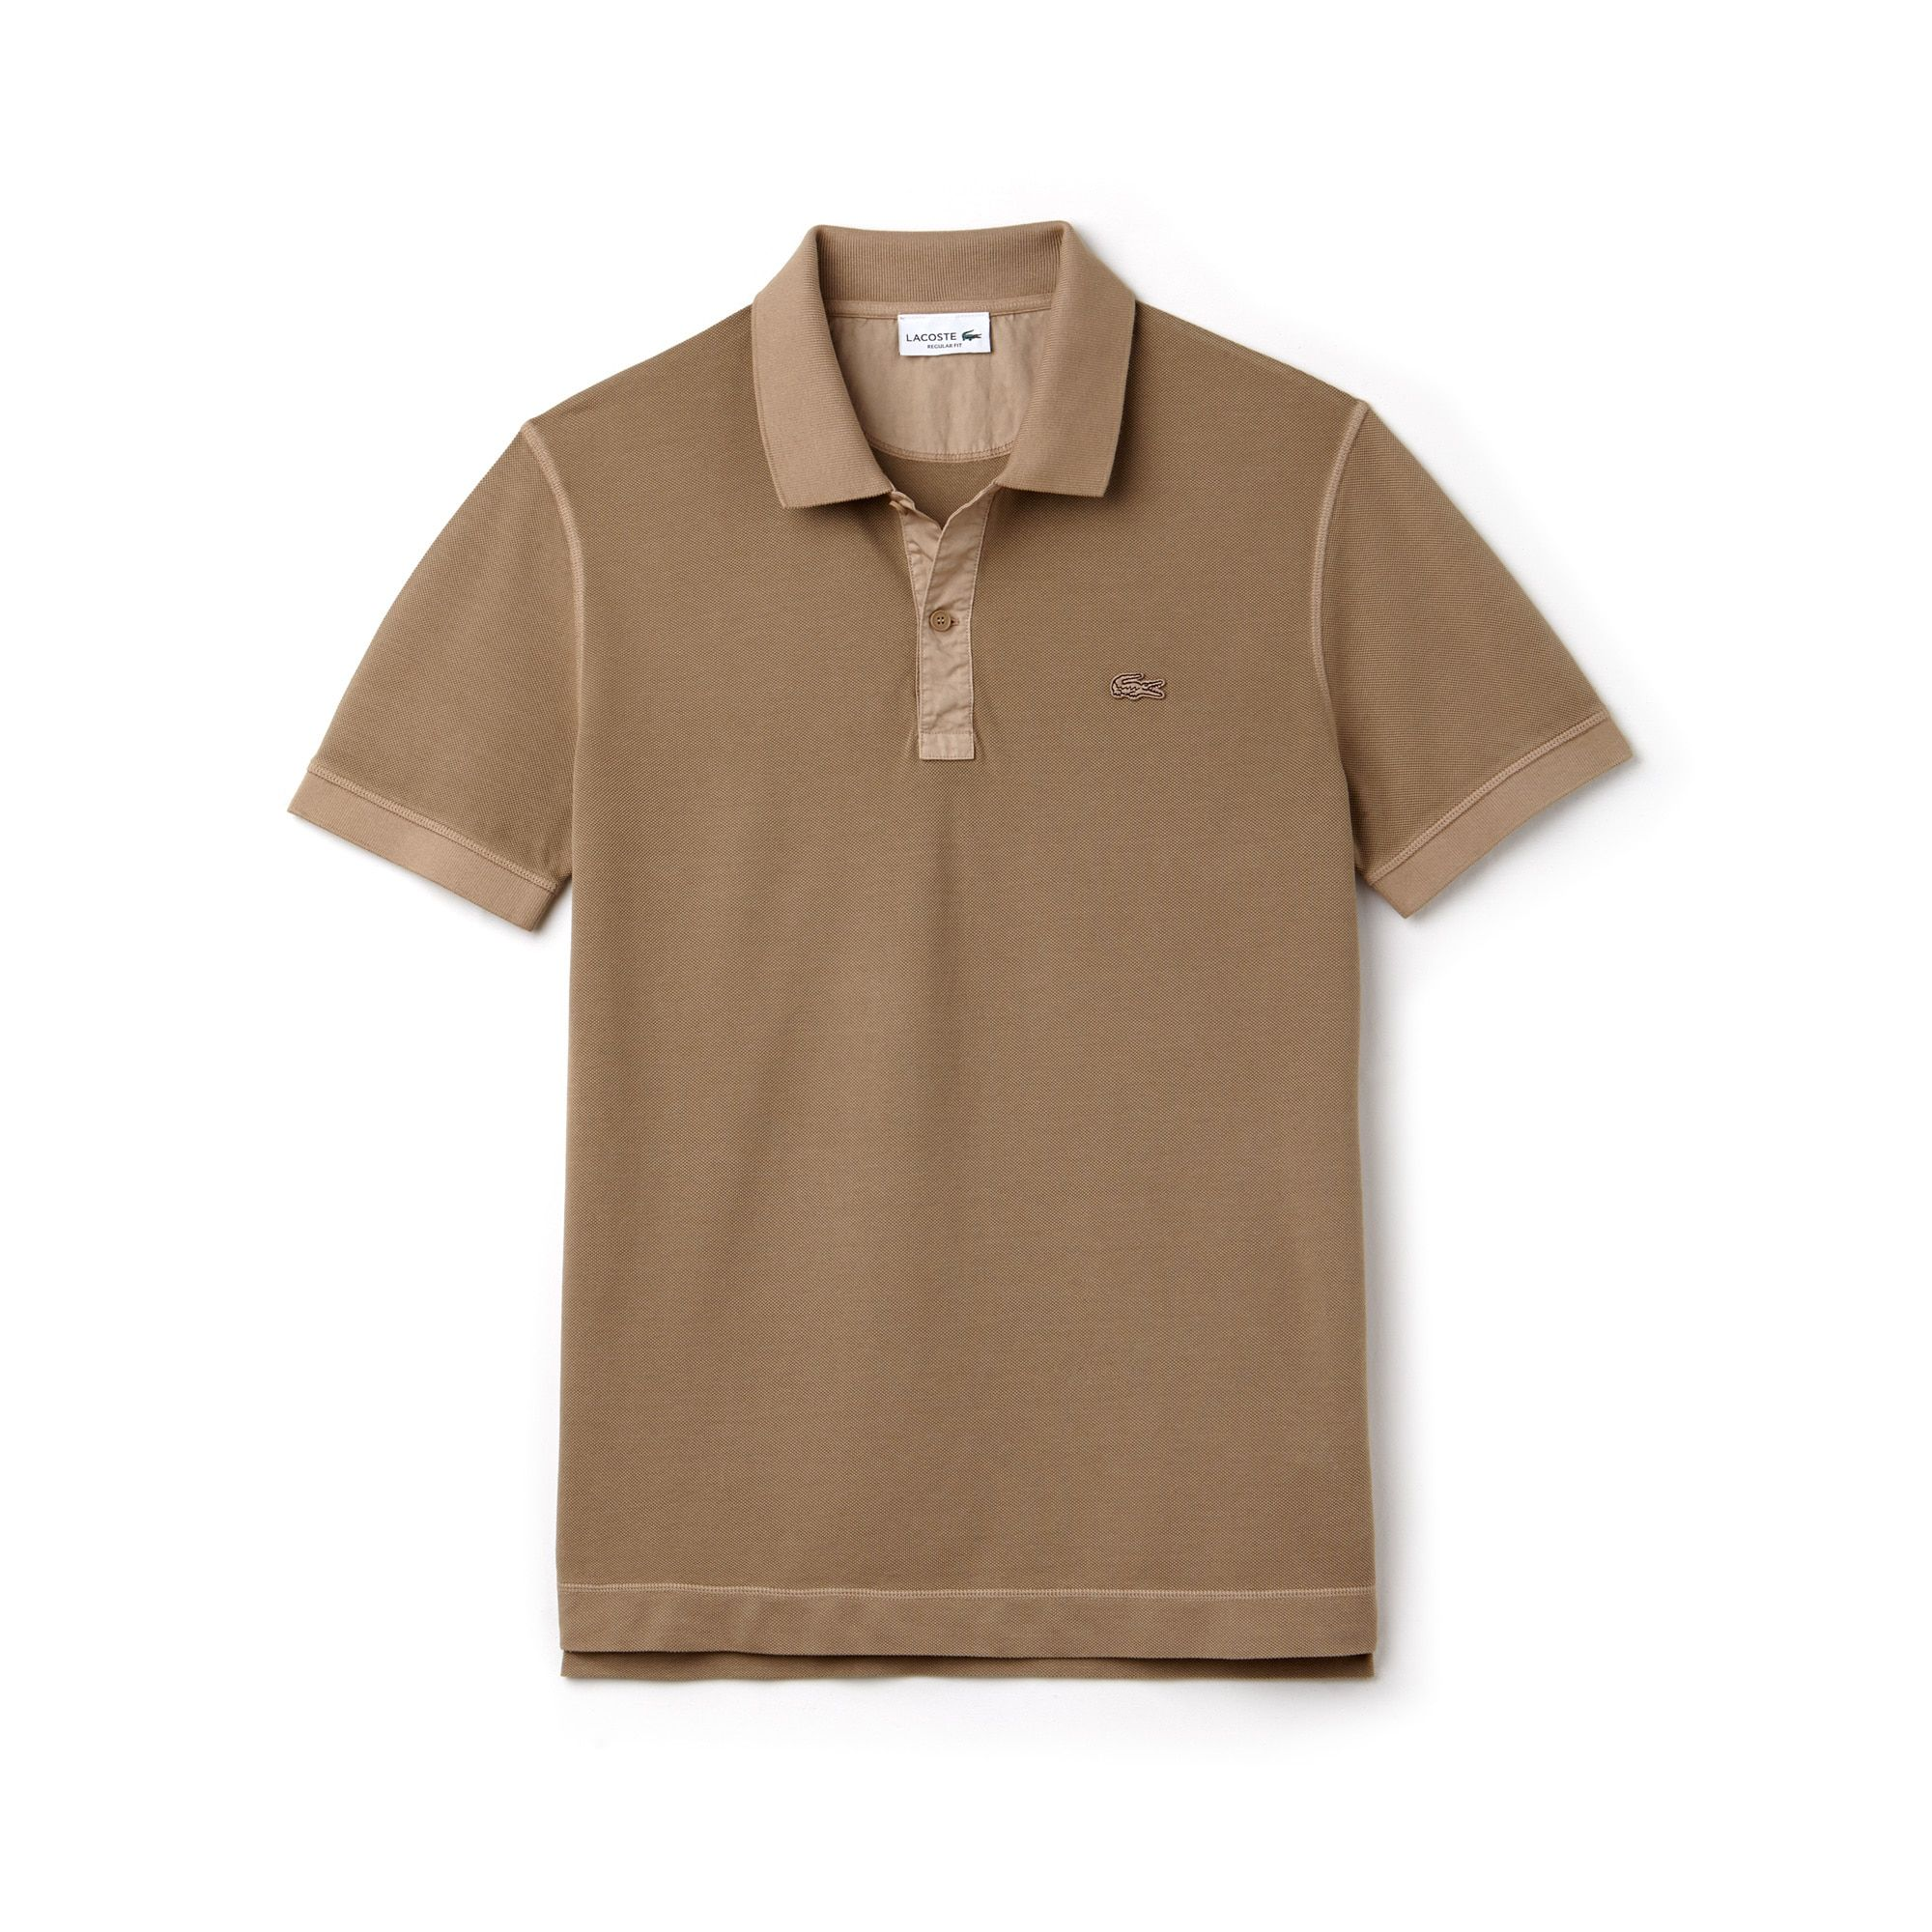 46153ea41a Men's Lacoste Regular Fit Square Knit Polo | LACOSTE | AW19-C | Polo ...